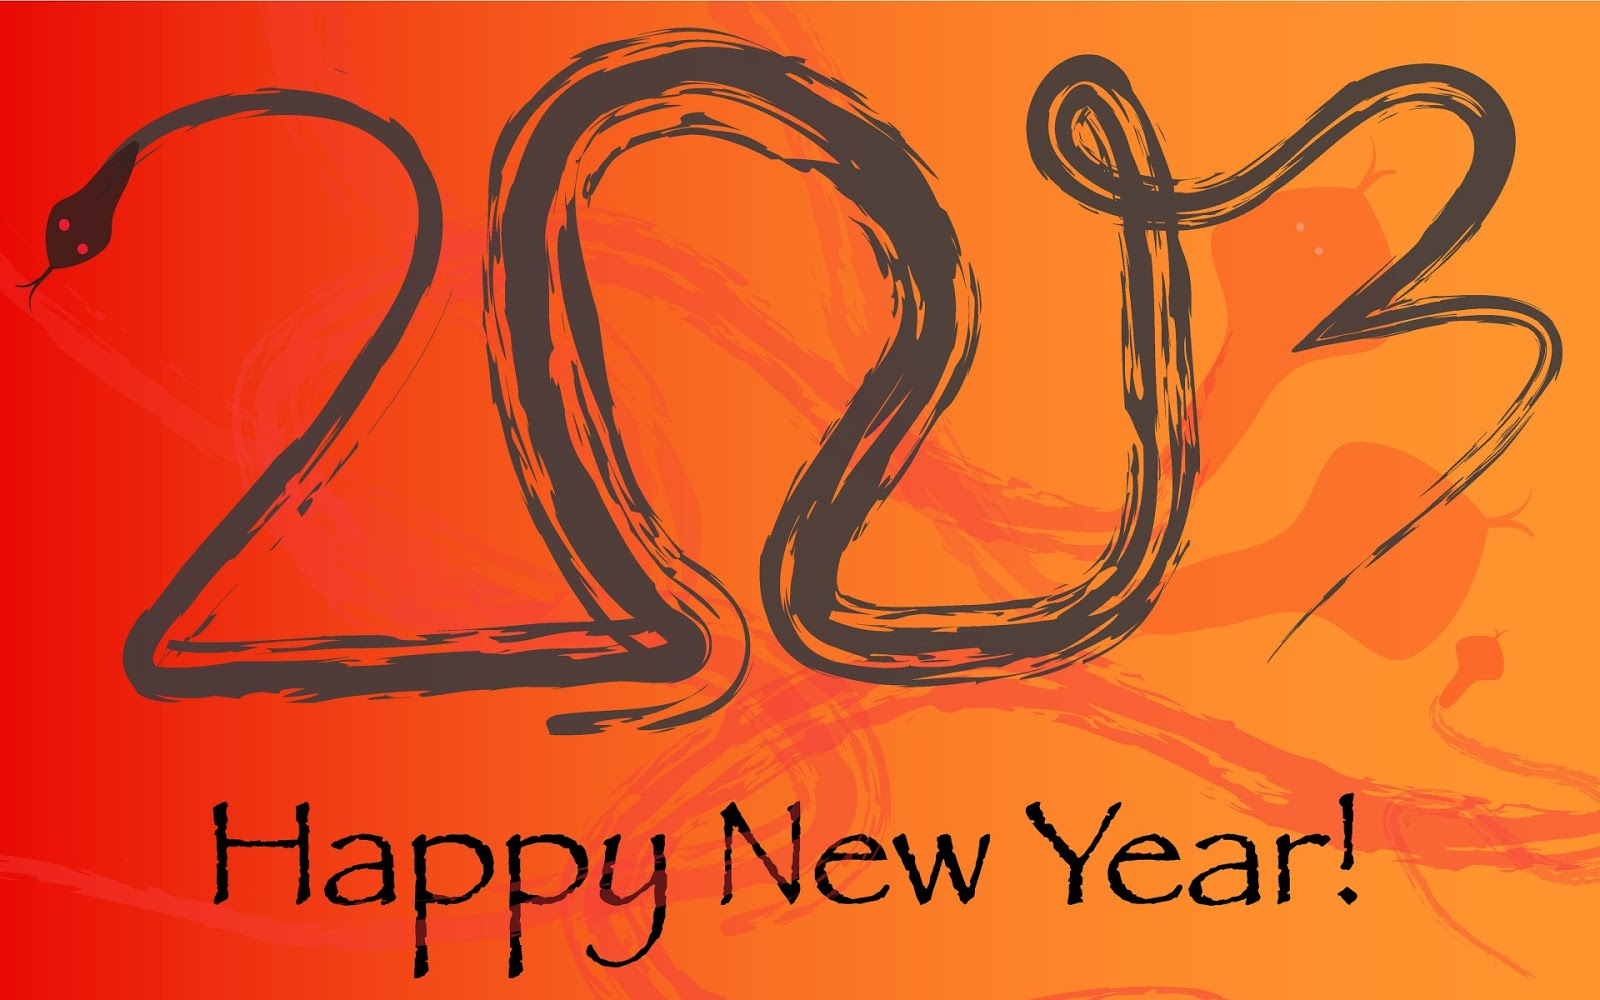 Happy New Year 2013. 1600 x 1000.Happy New Year Email Signature For Outlook